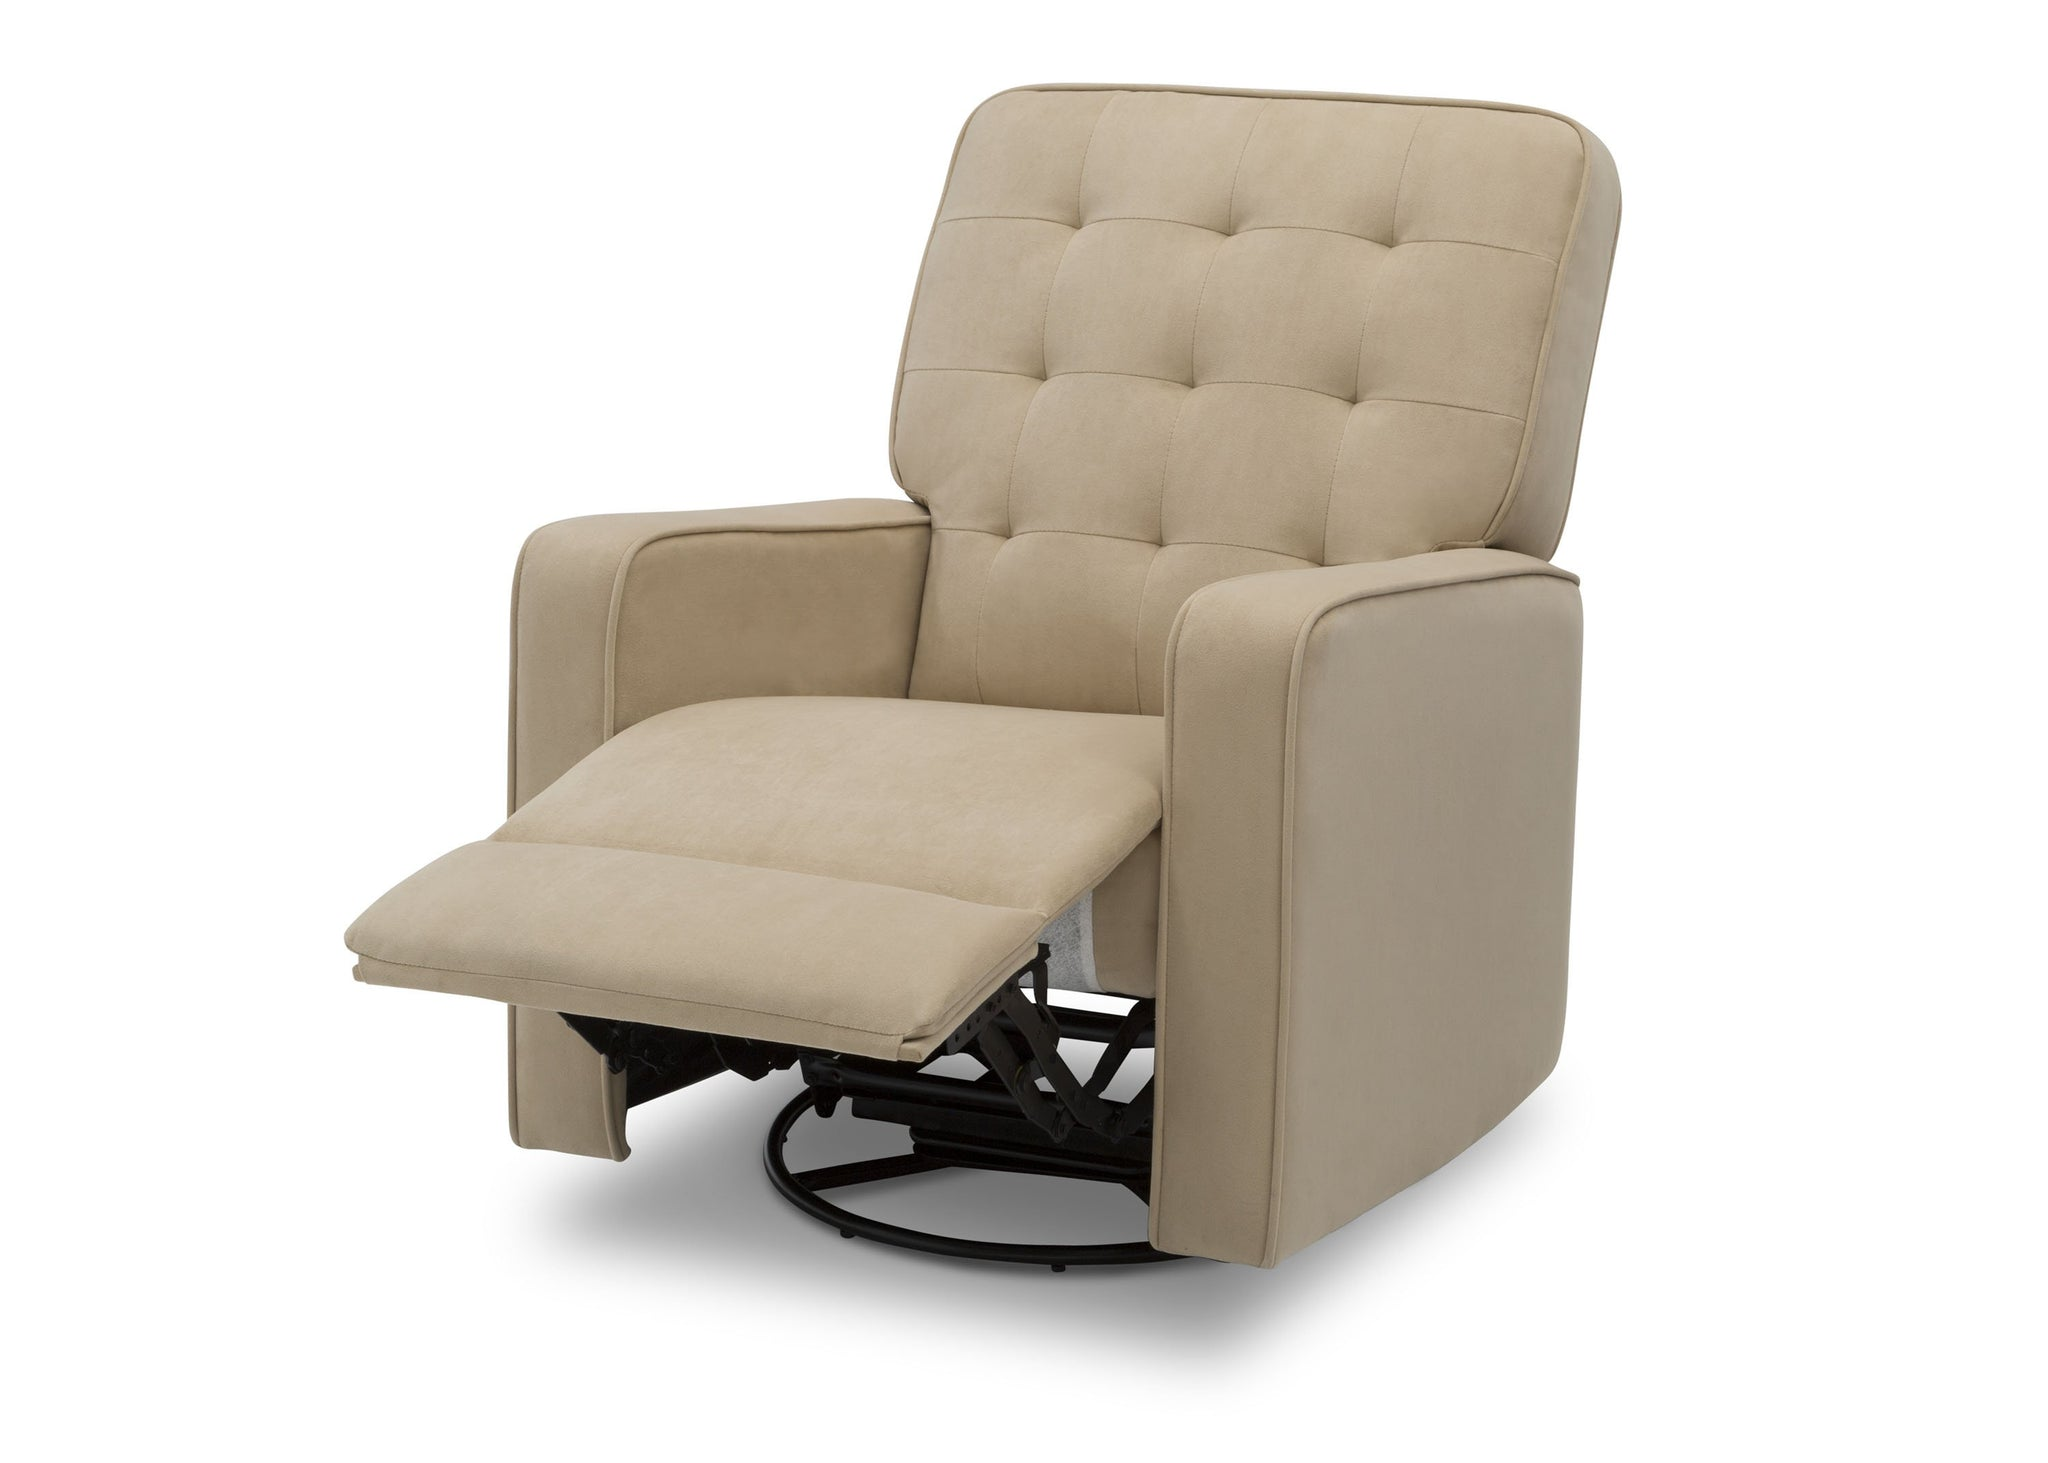 Delta Home Sisal (727) Grant Glider Swivel Recliner, Left Reclined Silo View